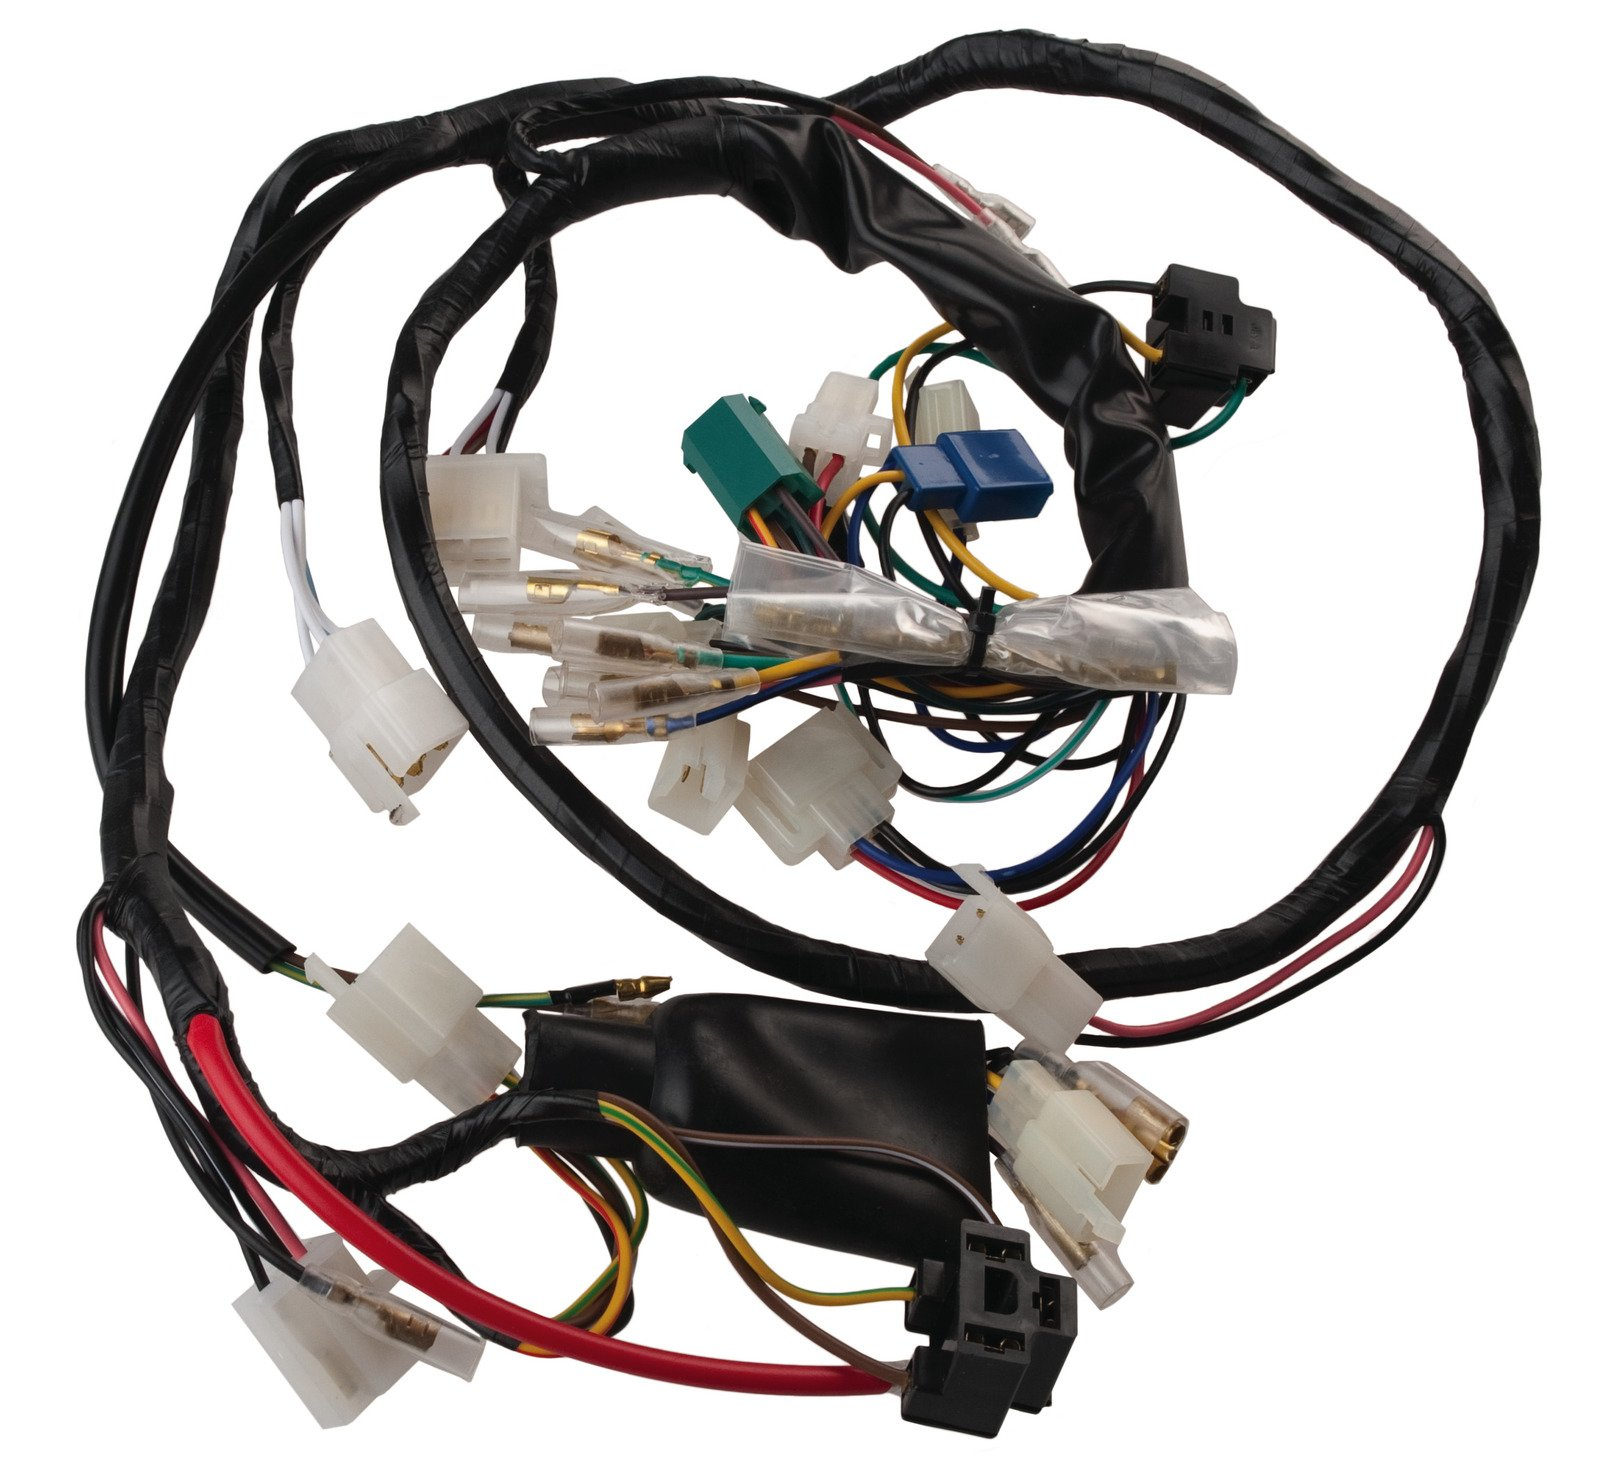 hight resolution of yamaha sr500 1978 1981 wiring harness 05 017